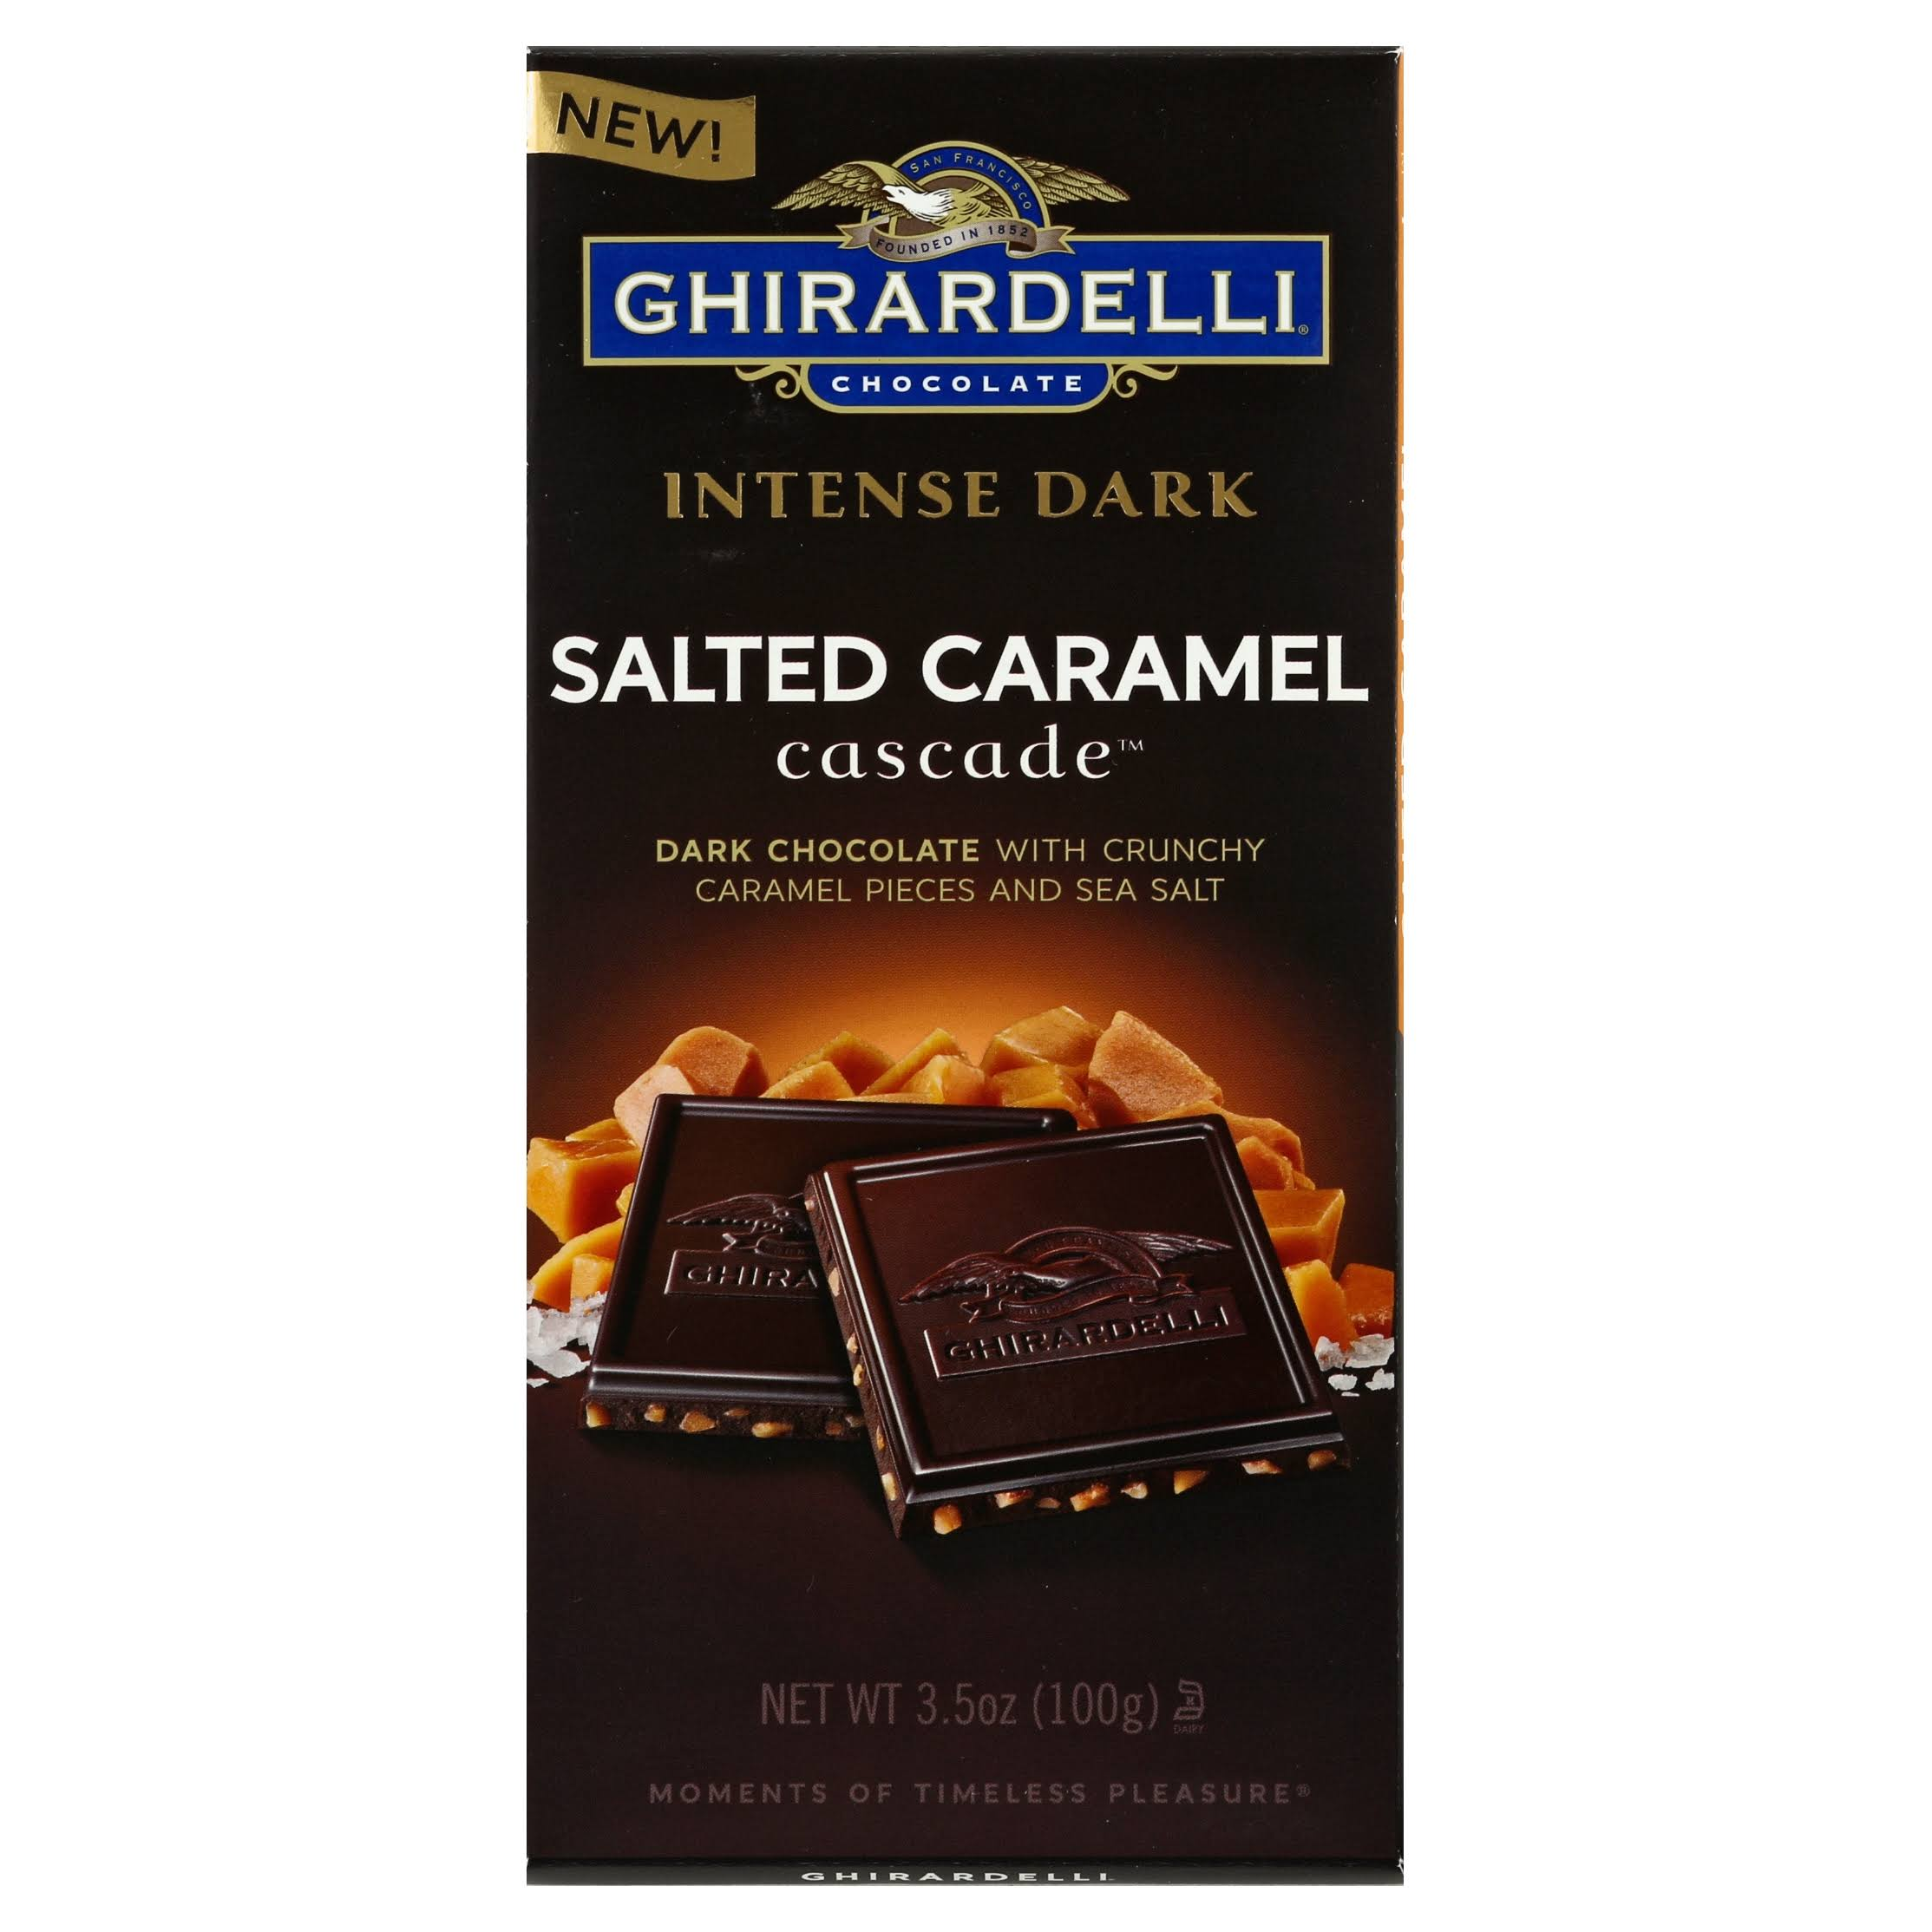 Ghirardelli Intense Dark Dark Chocolate, Salted Caramel Cascade - 3.5 oz